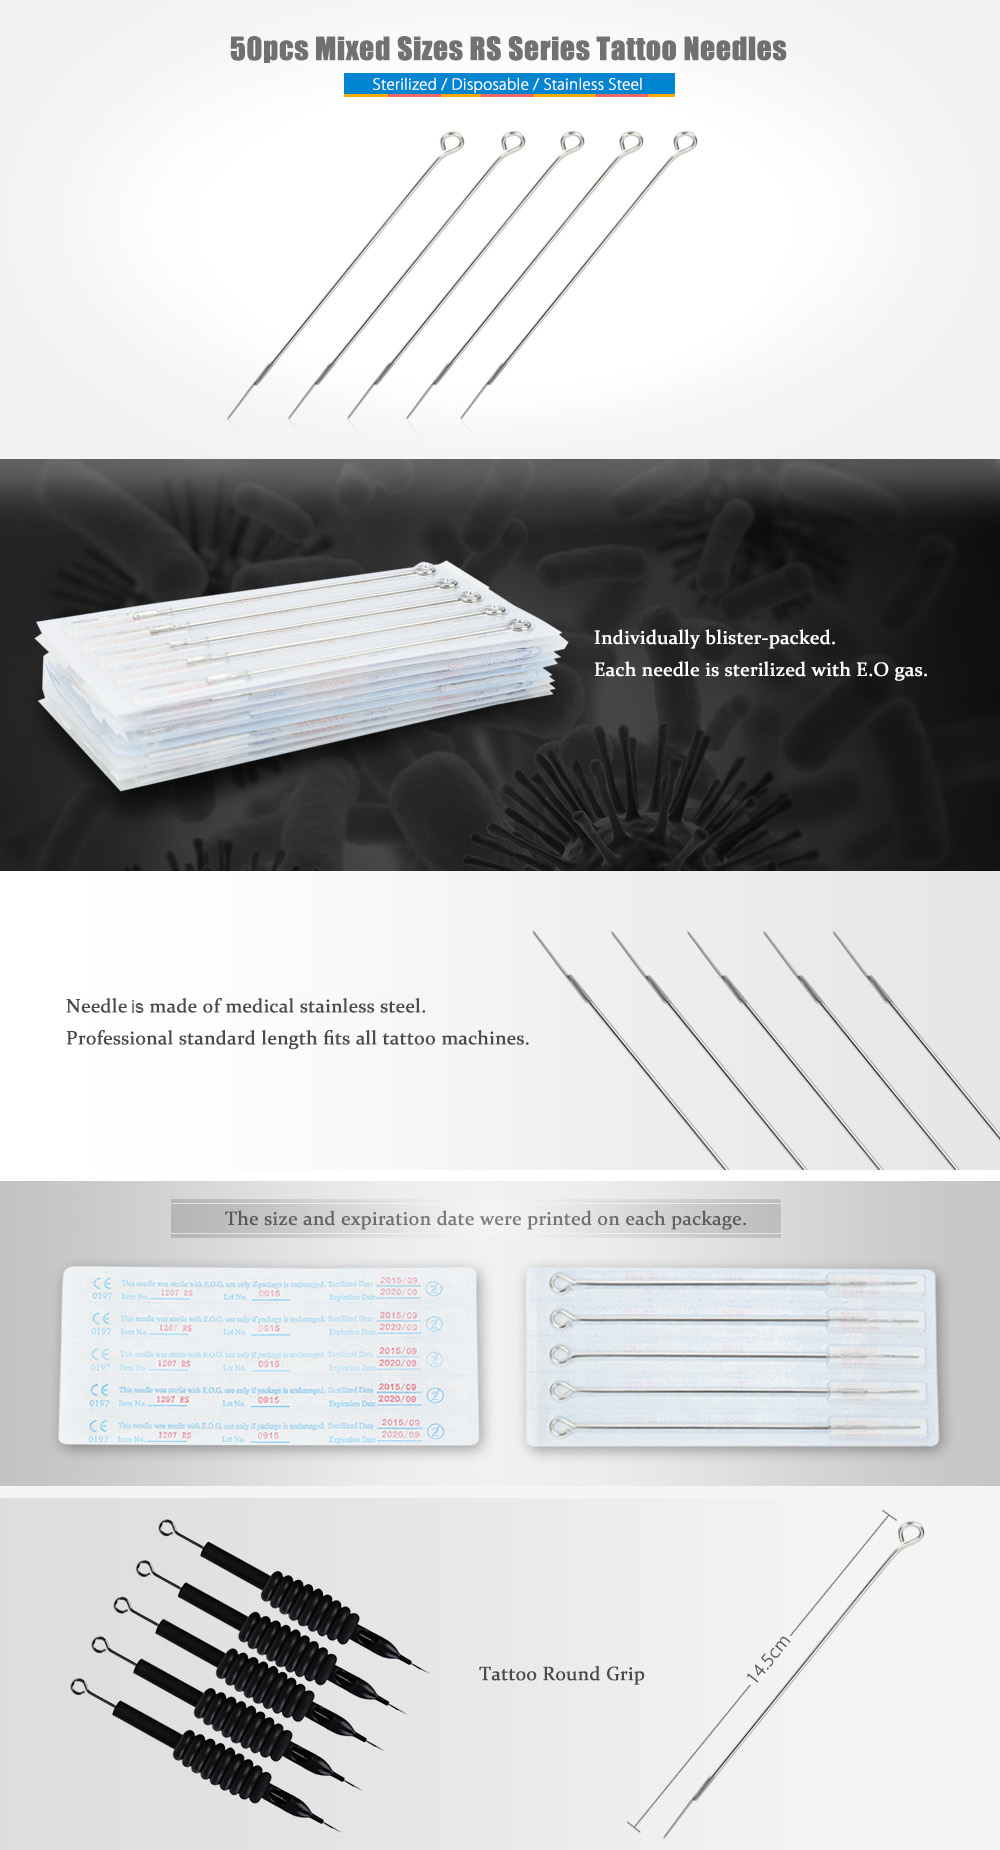 50pcs Stainless Steel Mixed Sizes RS Series Disposable Tattoo Needles for Round Grip